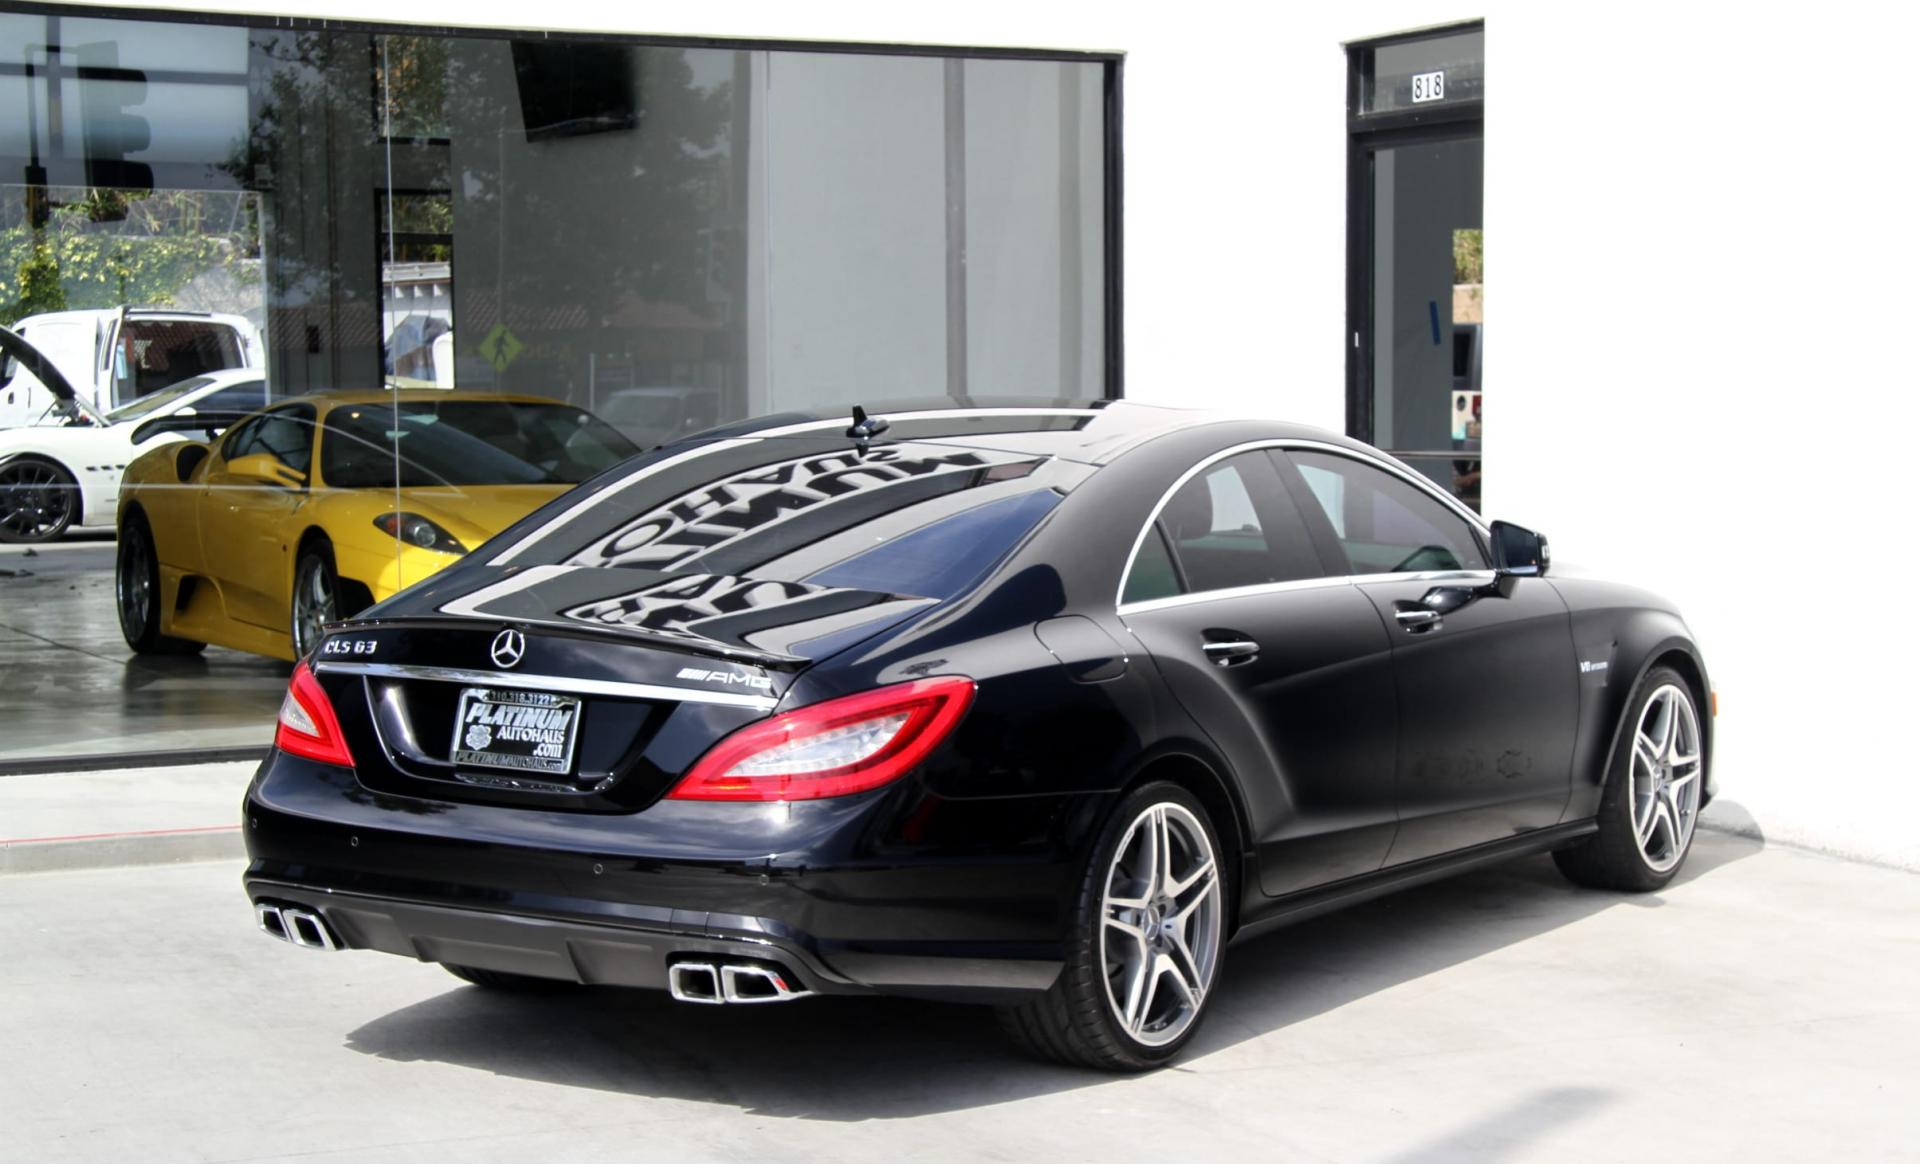 2013 mercedes benz cls 63 amg stock 5867 for sale near redondo beach ca ca mercedes benz dealer. Black Bedroom Furniture Sets. Home Design Ideas